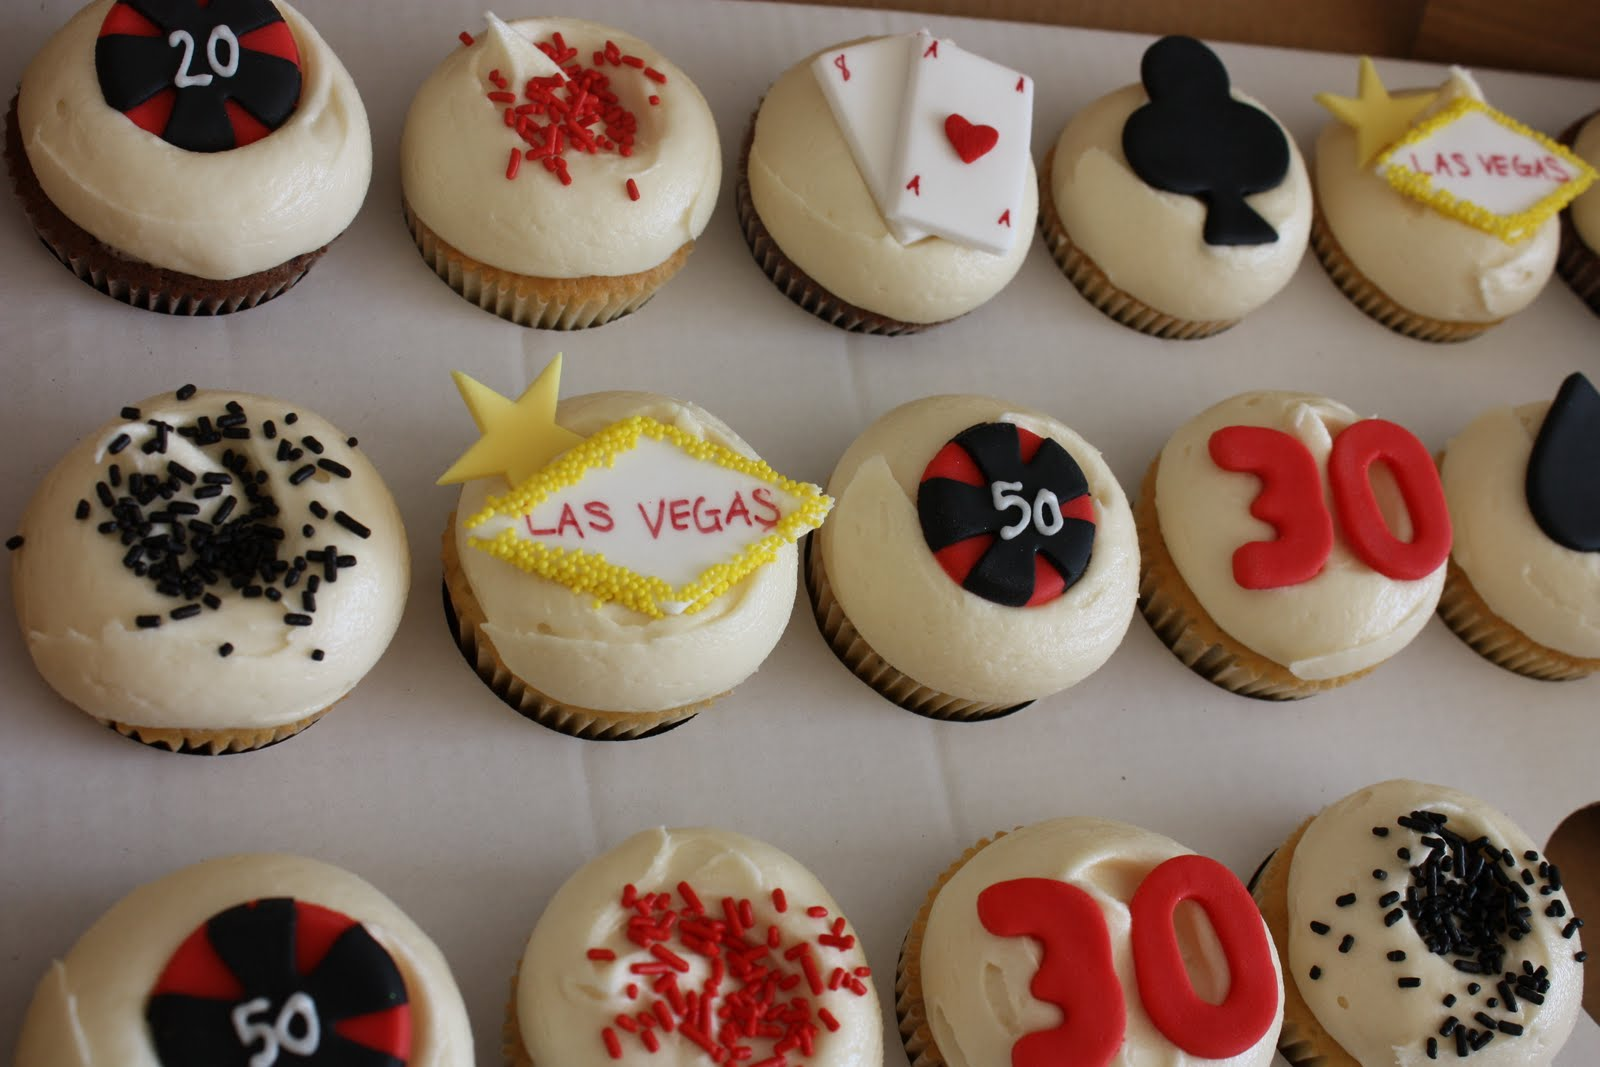 The Little House Of Cupcakes 30TH BIRTHDAY